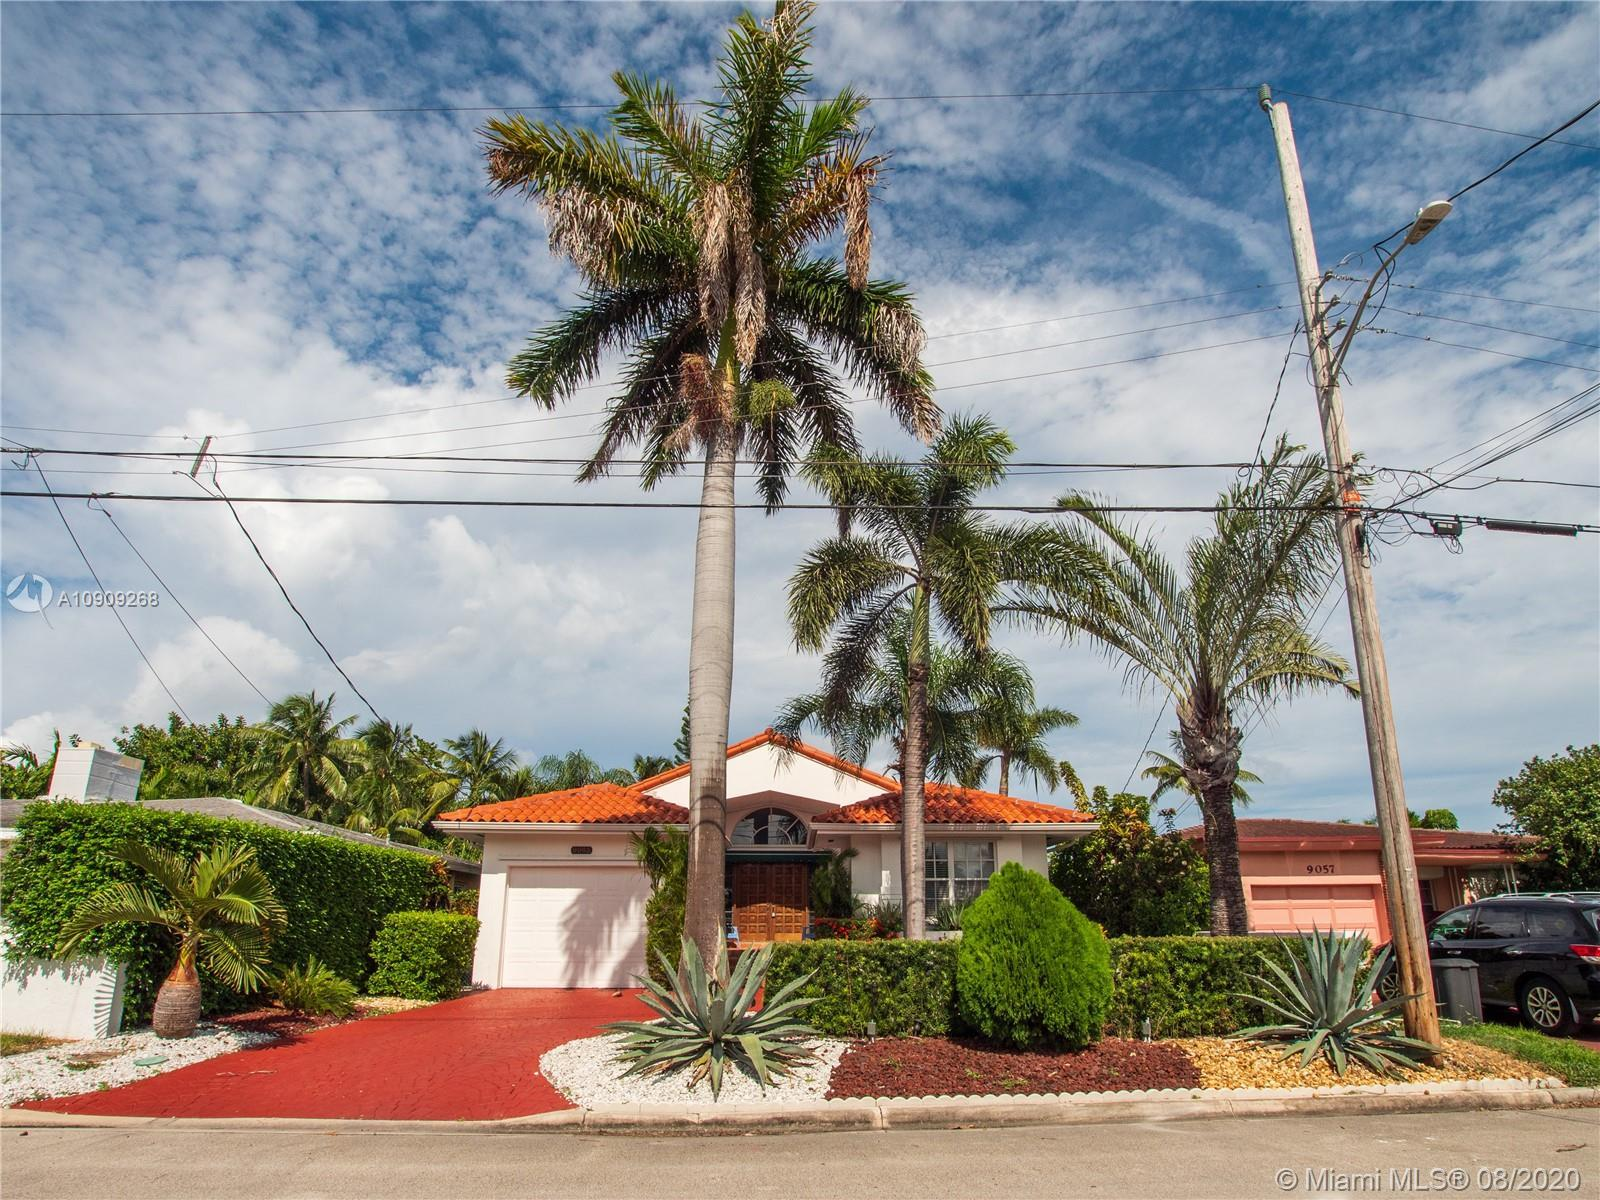 NEWEST HOUSE IN AREA 3 BED 2 BATH 1 CAR GARAGE. BEAUTIFUL  SURFSIDE HOUSE. BUILT IN 1991 WITH AN ELE